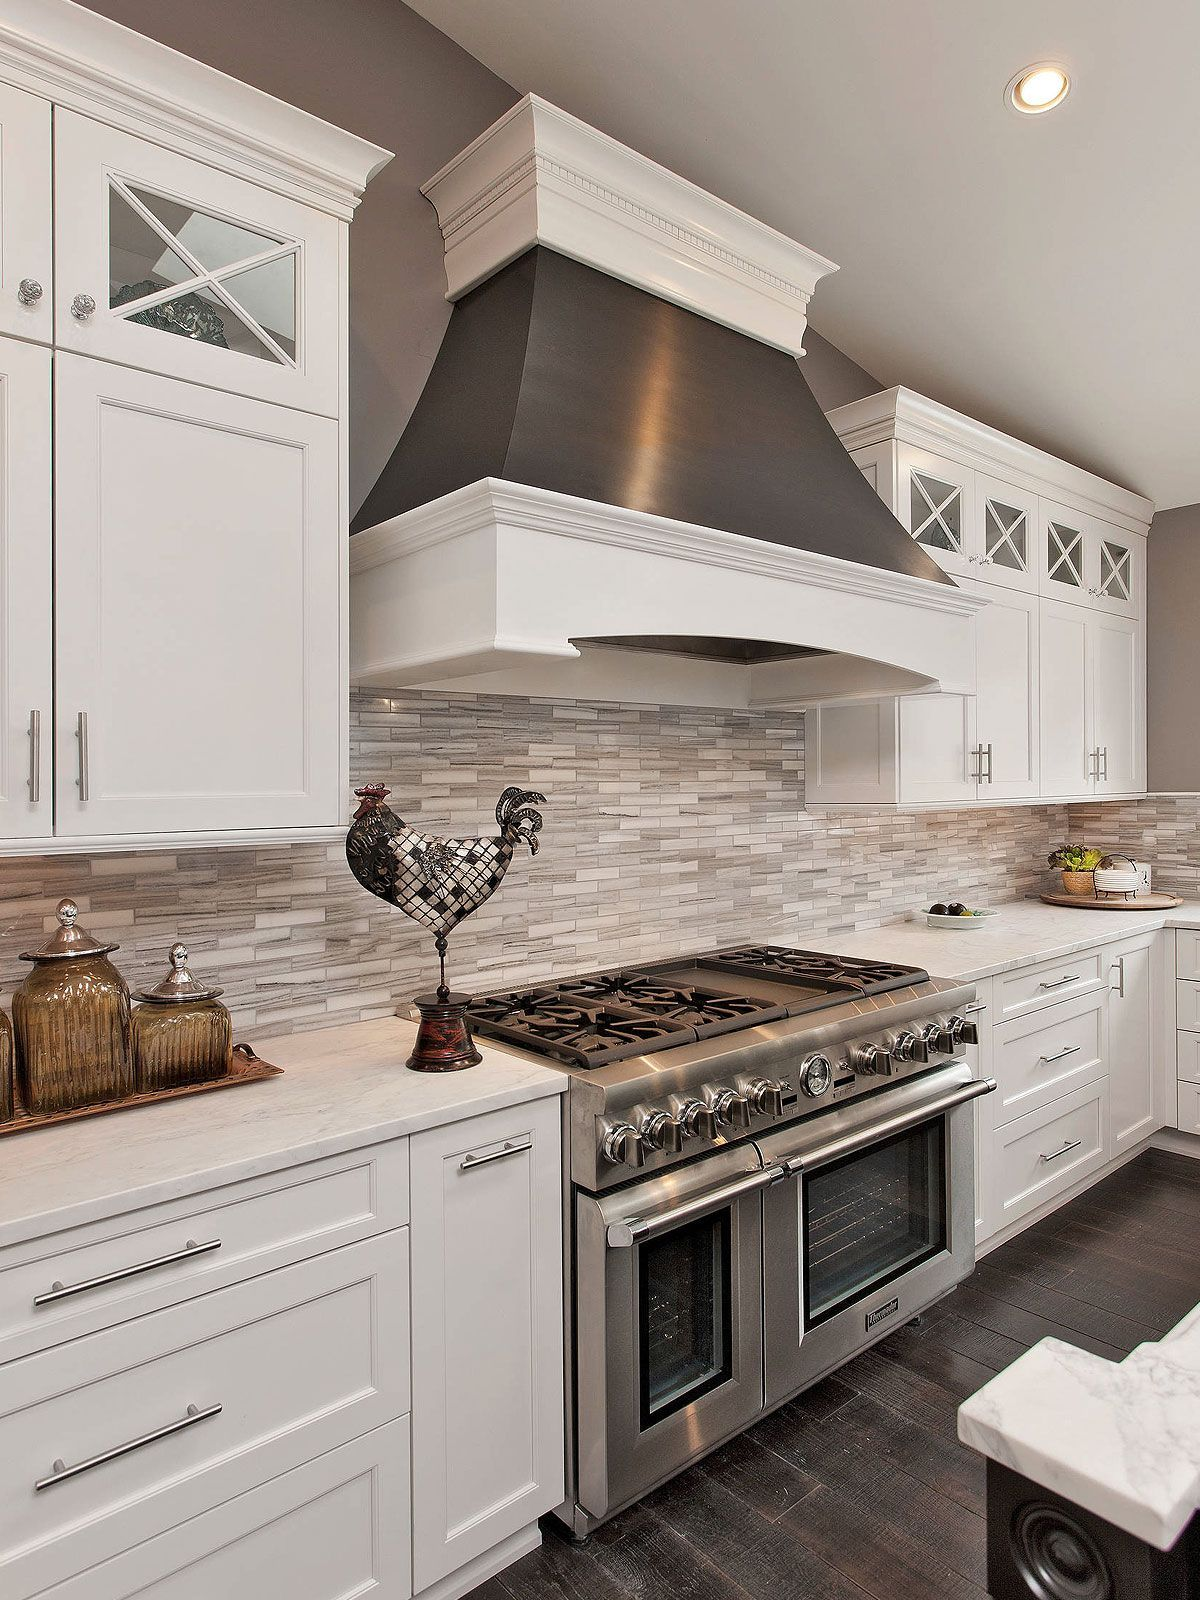 Most Popular Kitchen Design Ideas On 2018 How To Remodeling Kitchendesignideas Kitchenideas Smallkitchen Kitchen Renovation Kitchen Style Kitchen Design